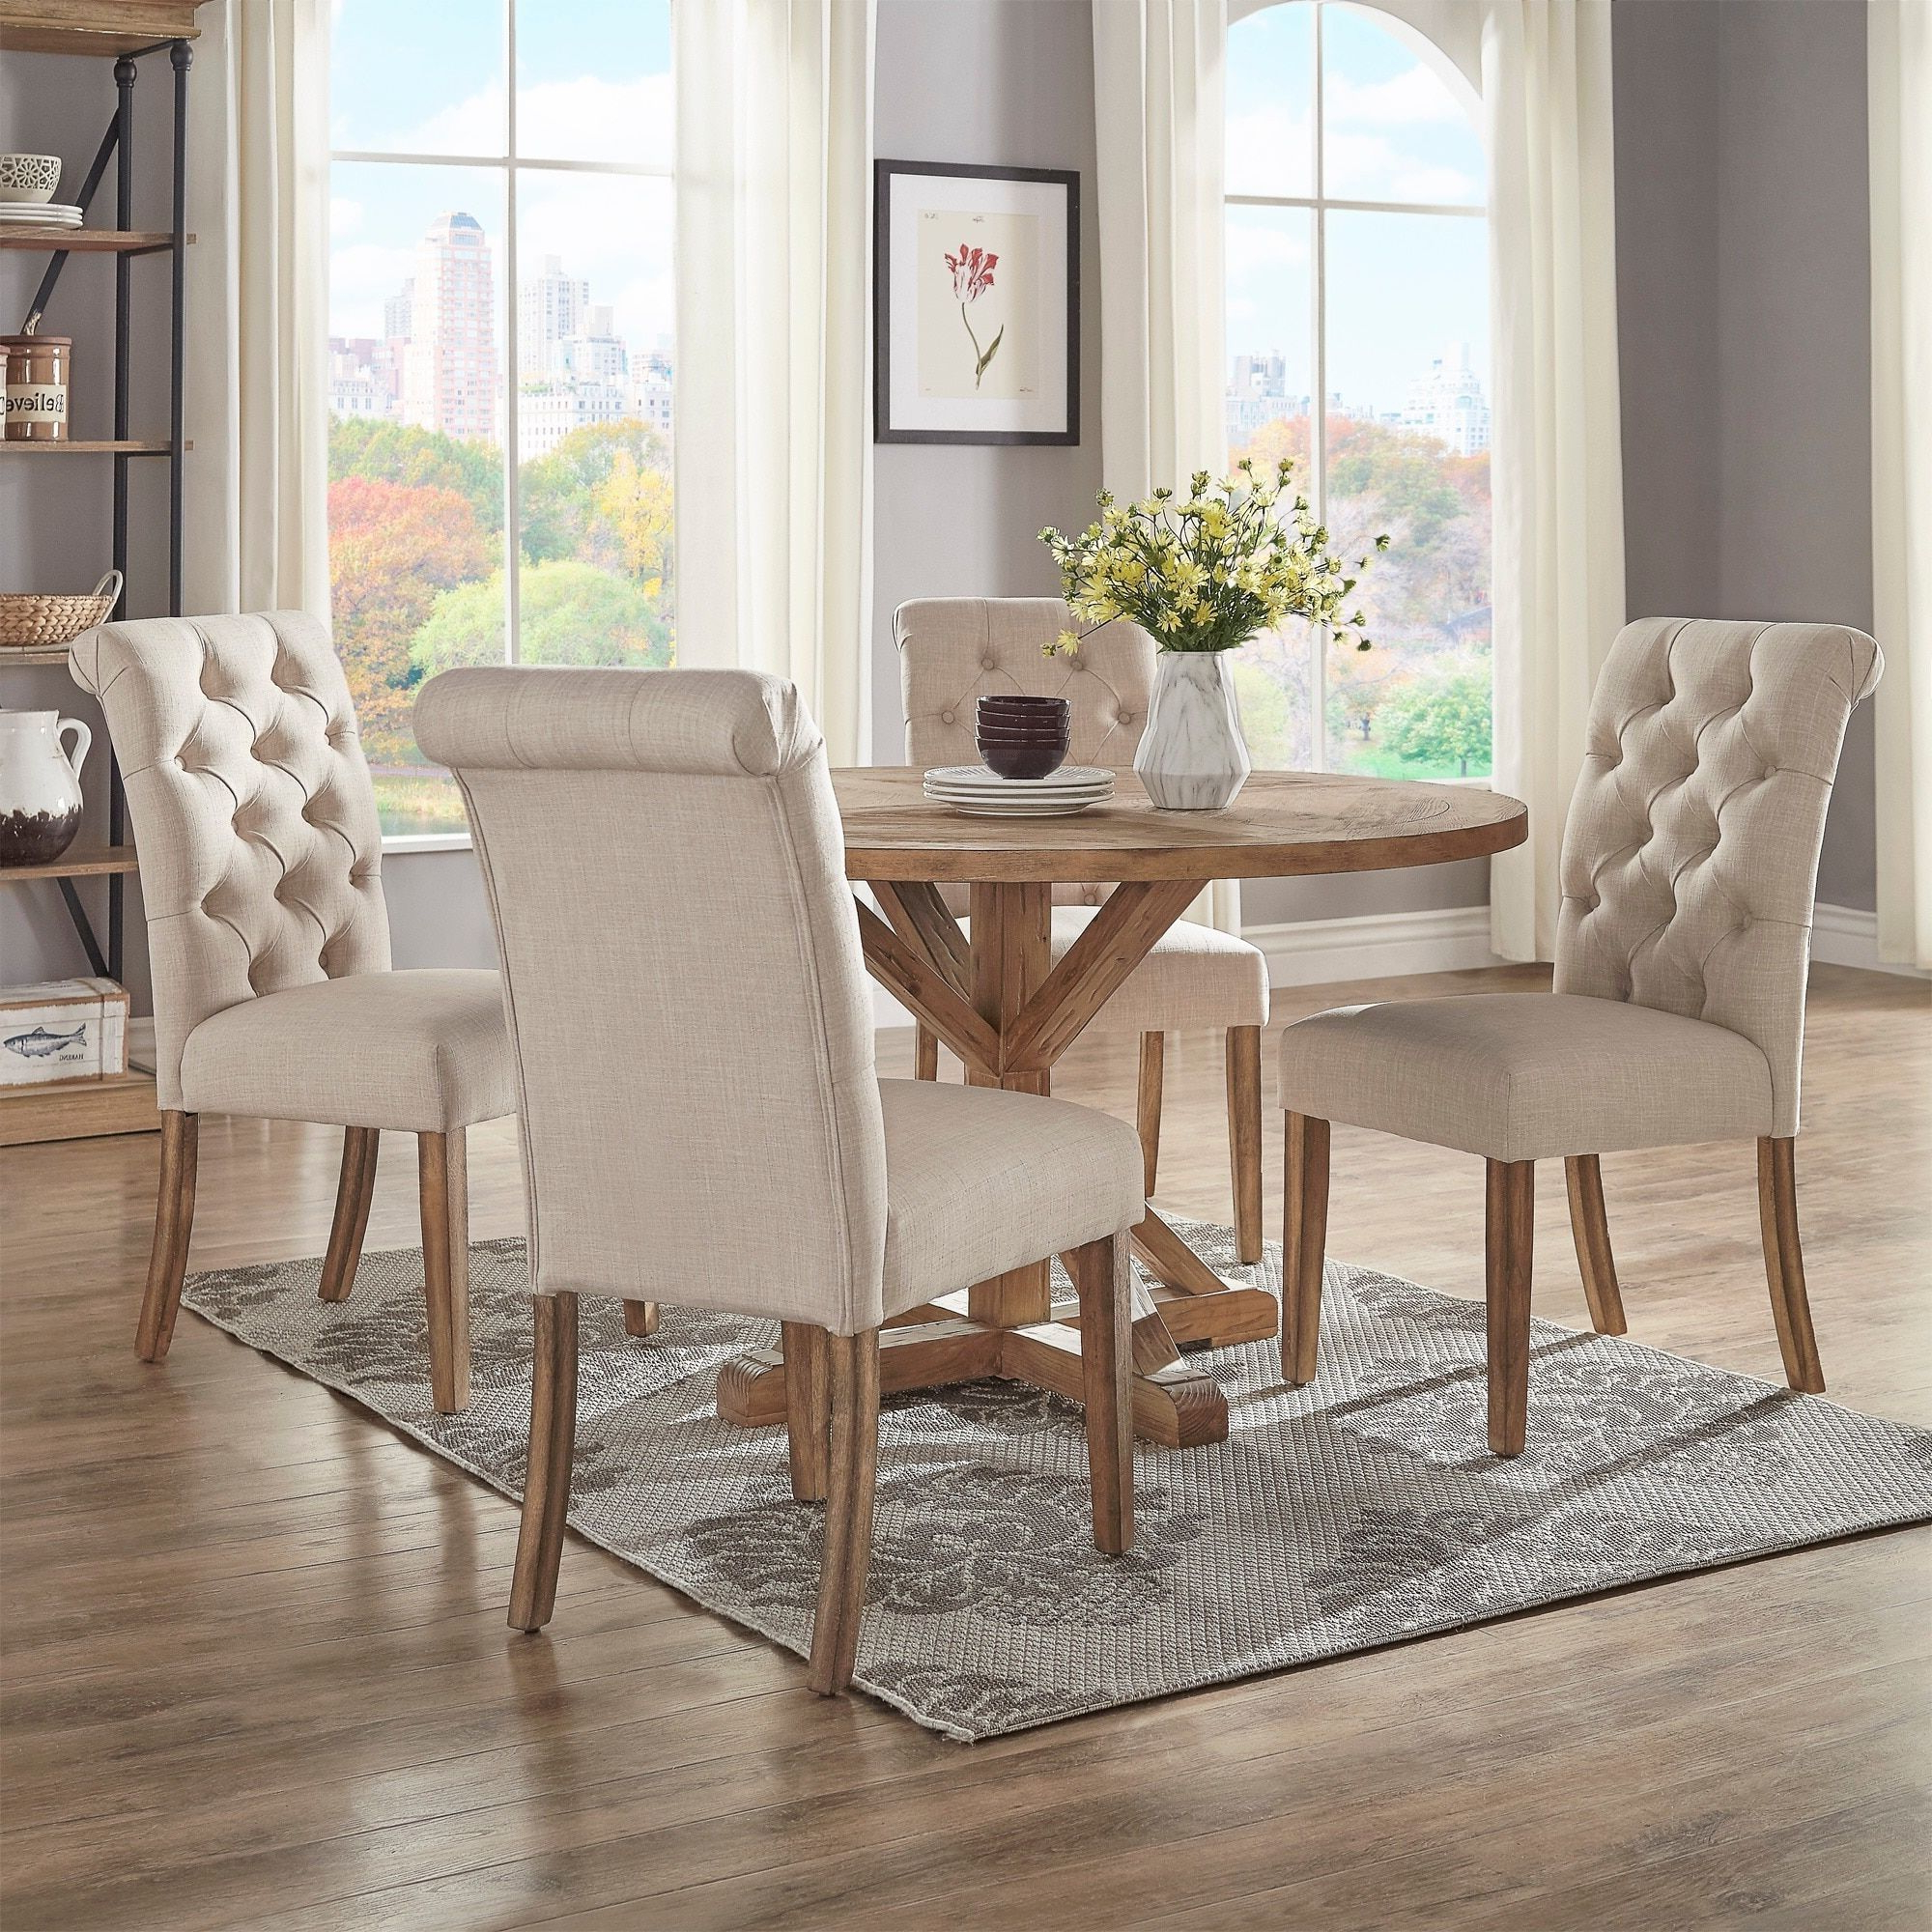 Benchwright Round Pedestal Dining Tables Throughout Latest Benchwright Rustic X Base 48 Inch Round Dining Table Set (View 3 of 25)